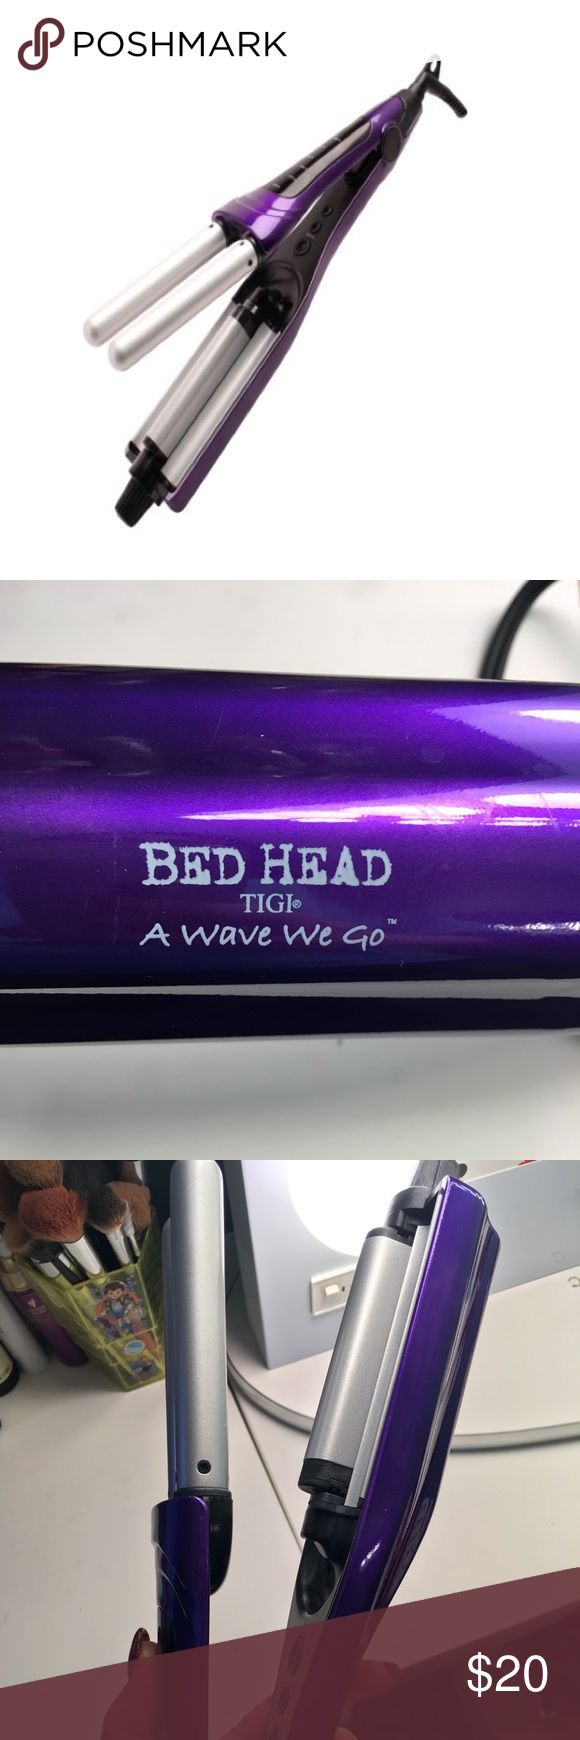 BED HEAD A-Wave-We-Go Adjustable Hair Waver BED HEAD brand hair waver with adjustable barrel for multiple wave settings and multiple heat settings. Used only once. BedHead Other